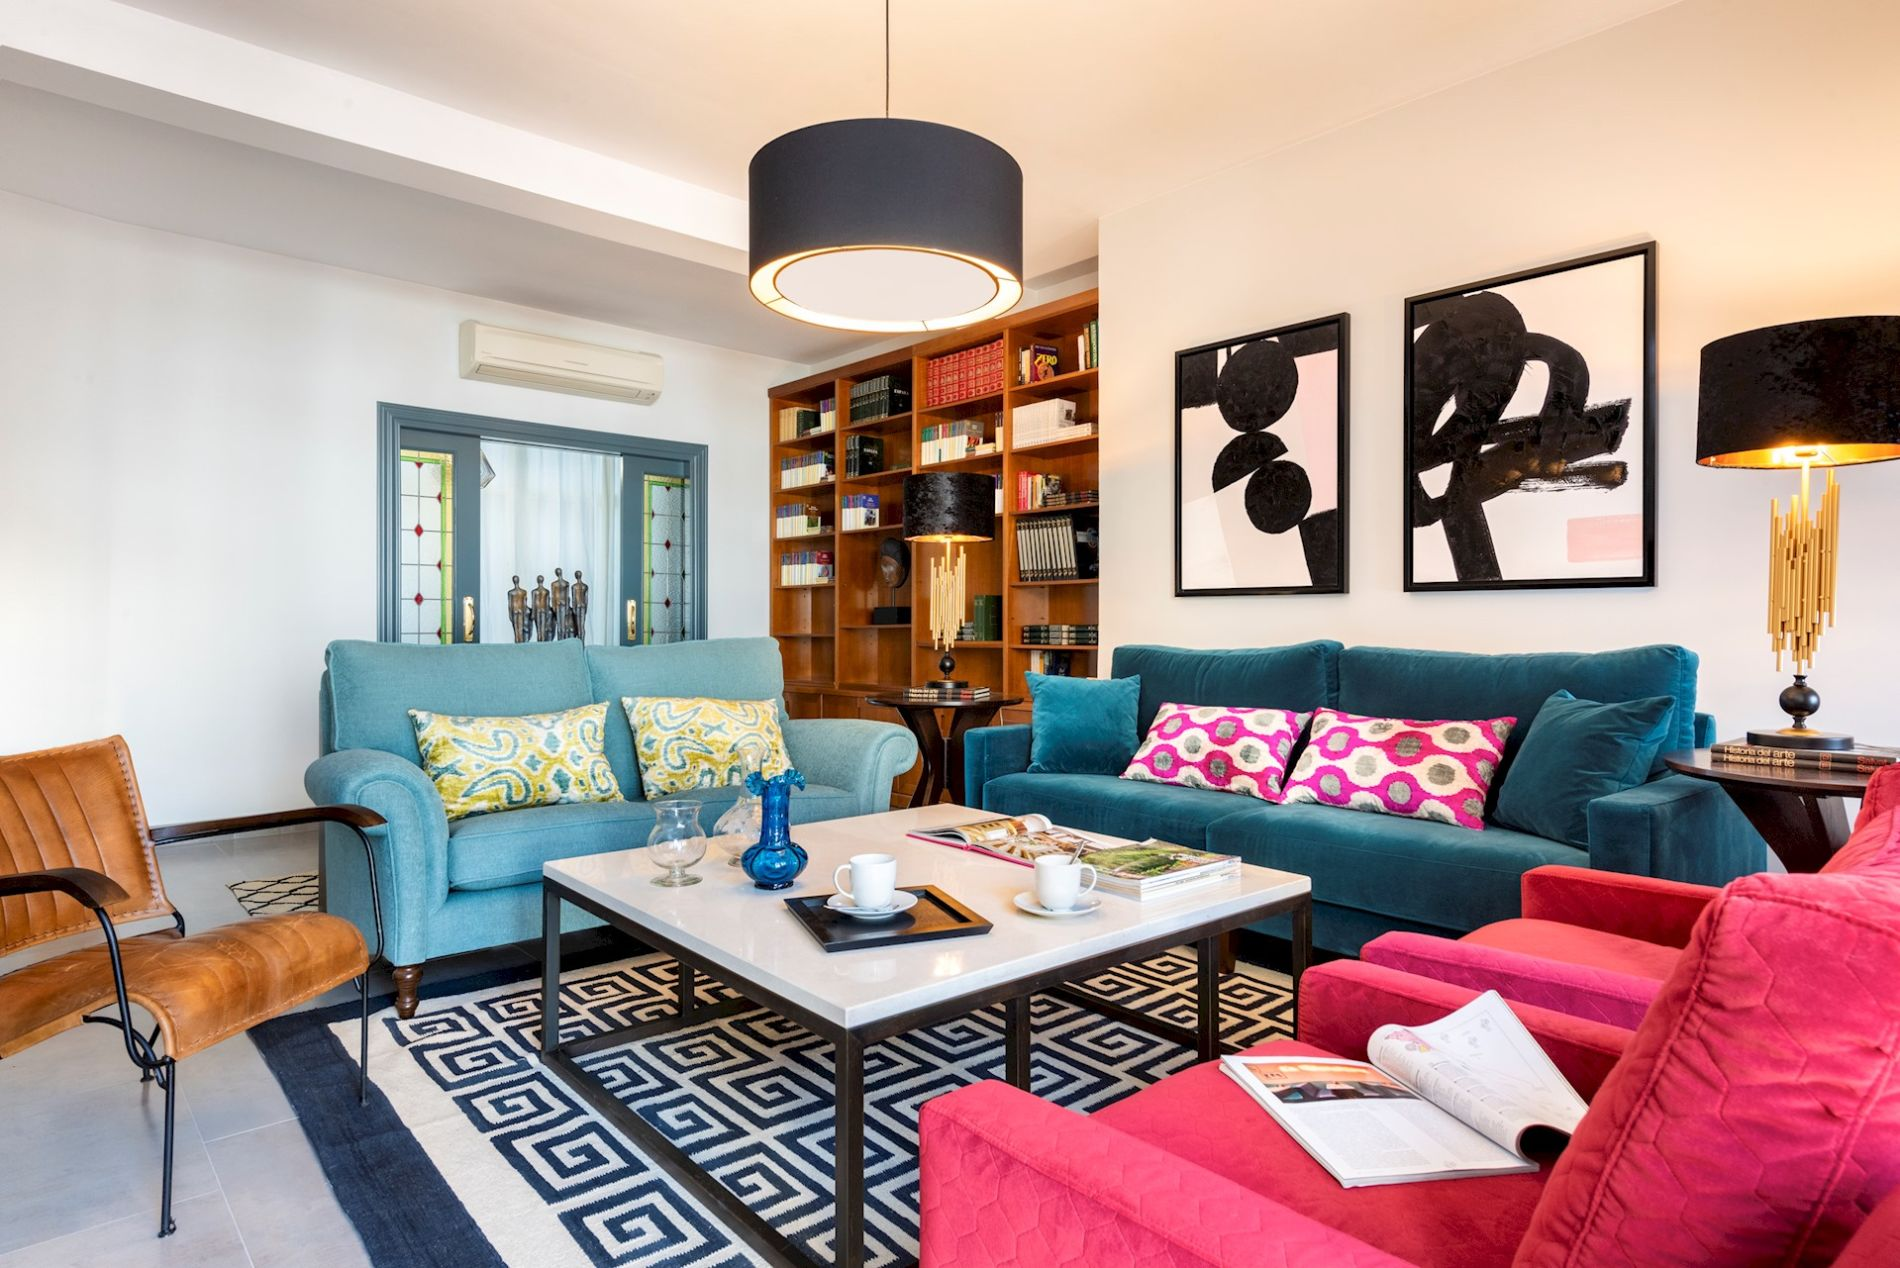 Apartment in Seville with 4 Bedrooms and 3 Bathrooms ideal for large families